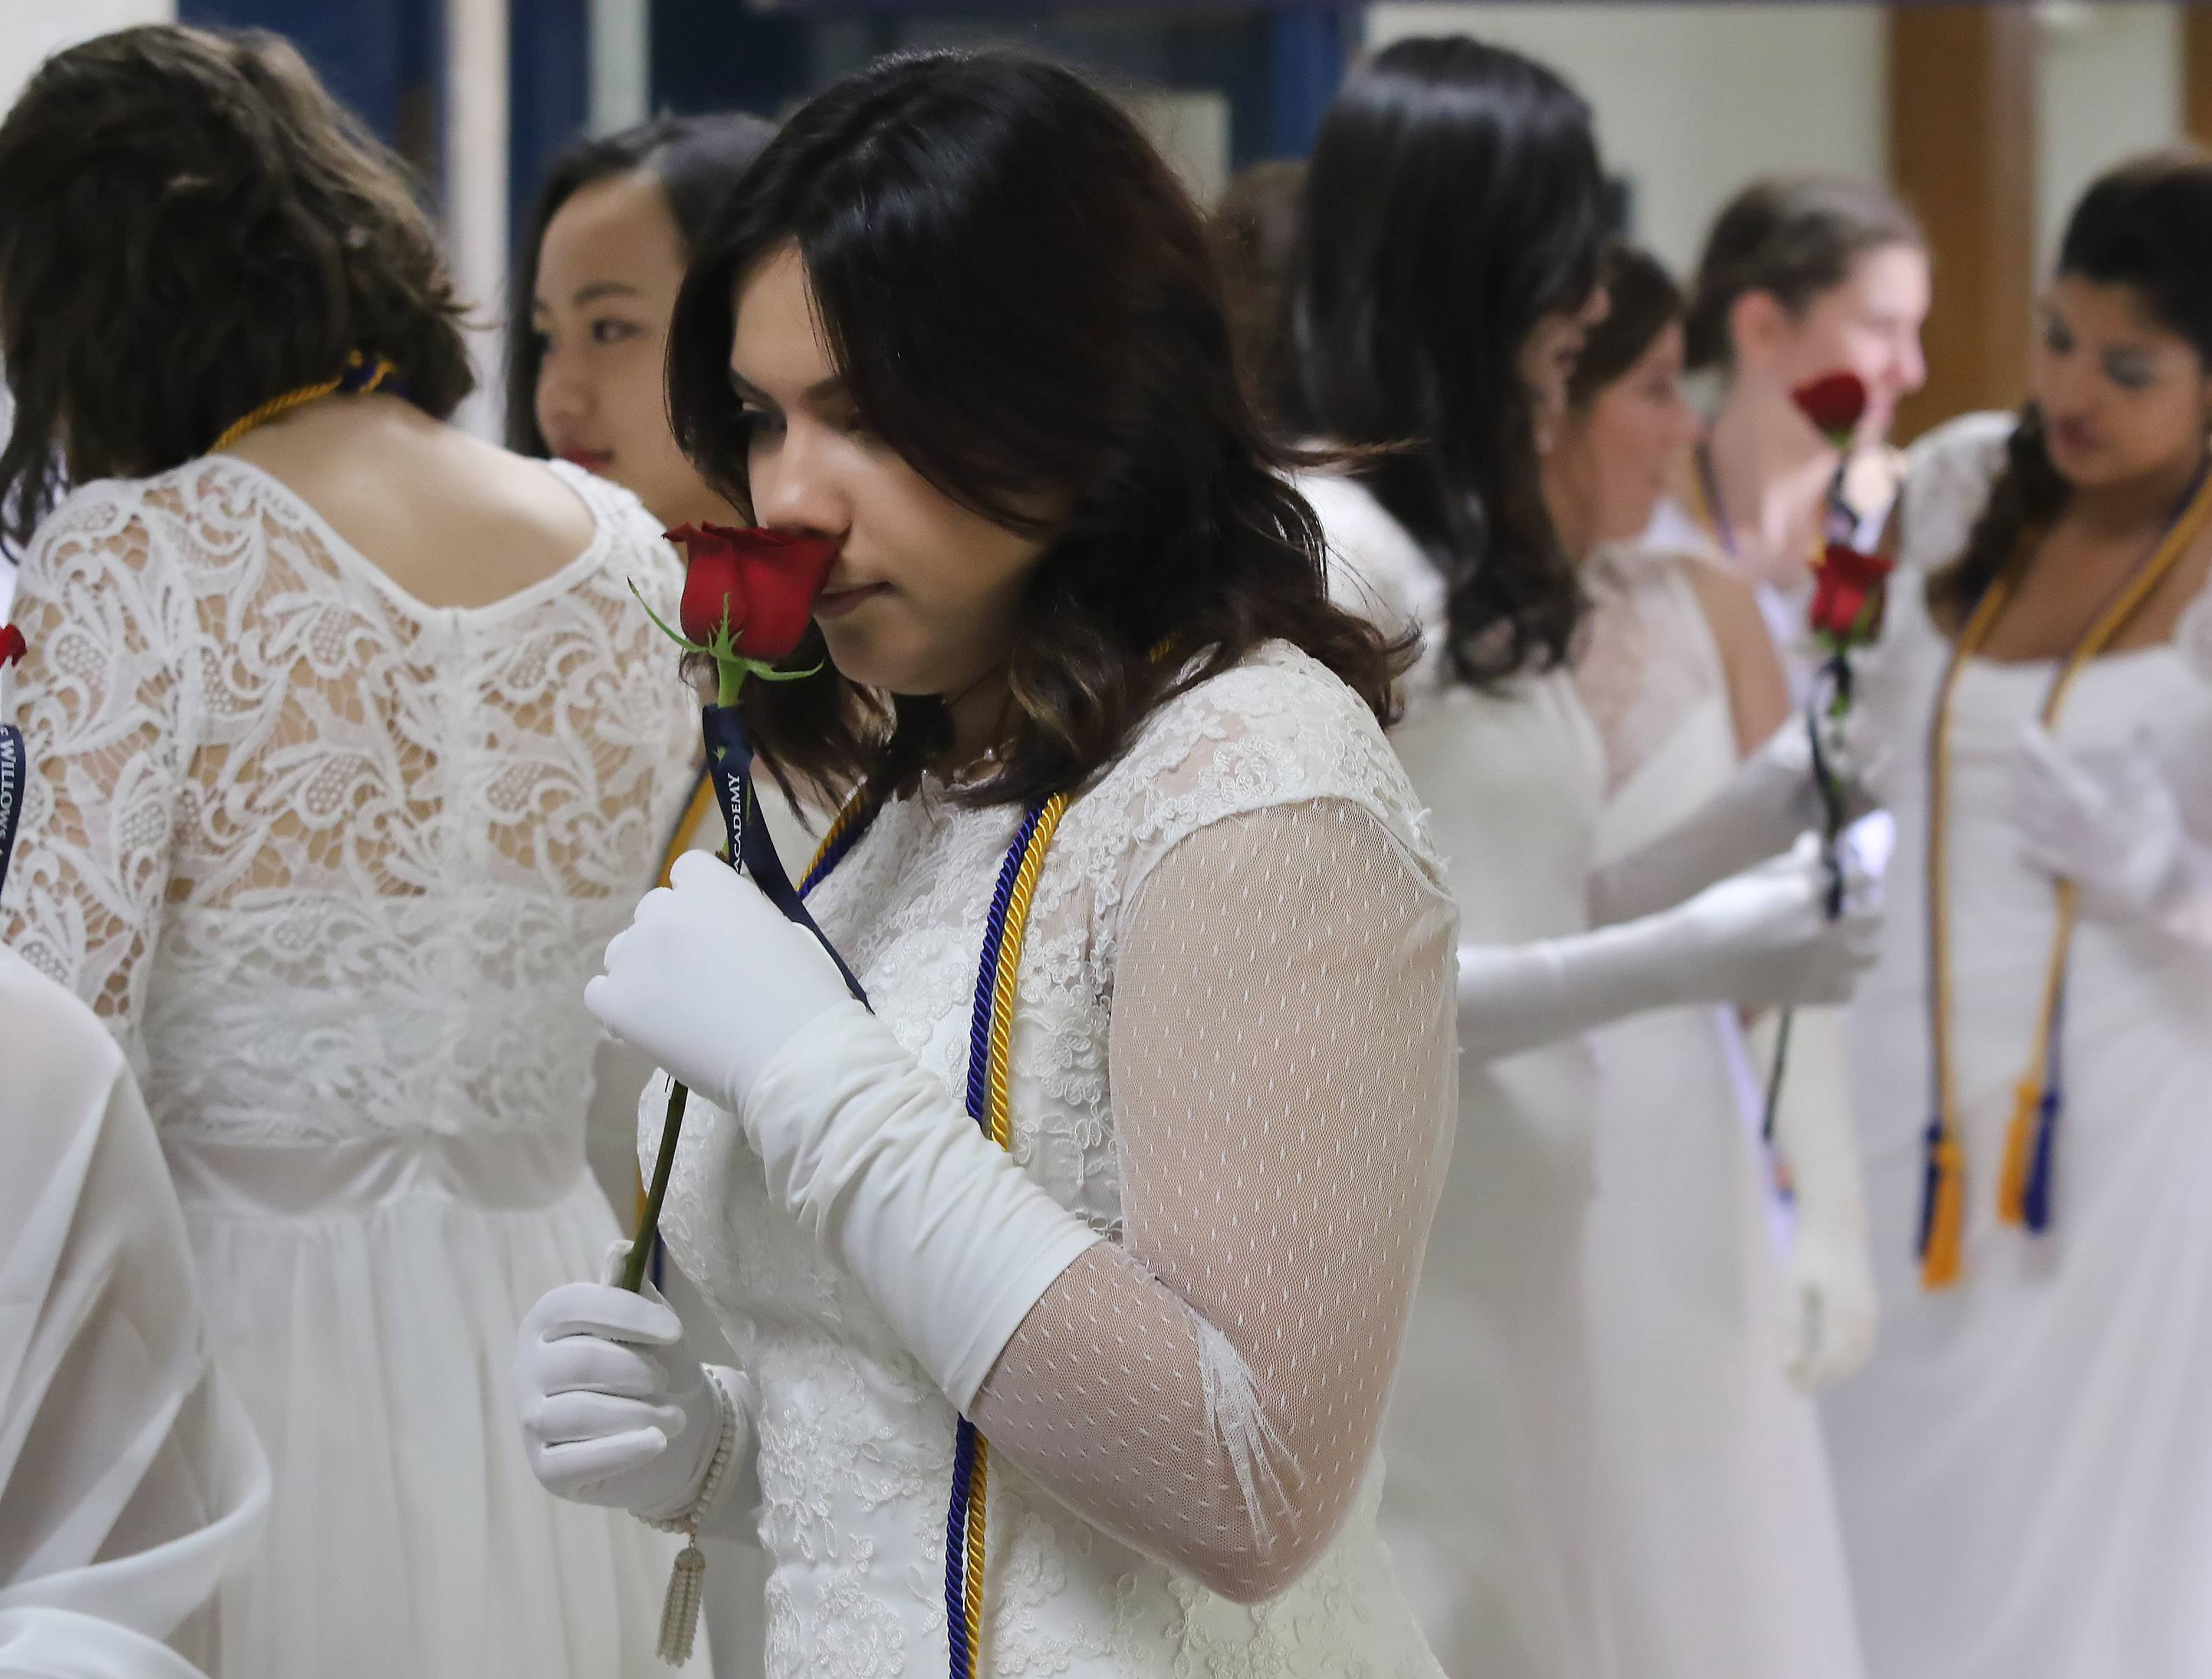 Sarah Maywald smells a rose she received before the graduation ceremony at The Willows Academy in Des Plaines on Sunday. There were 43 graduates at this year's commencement exercises.